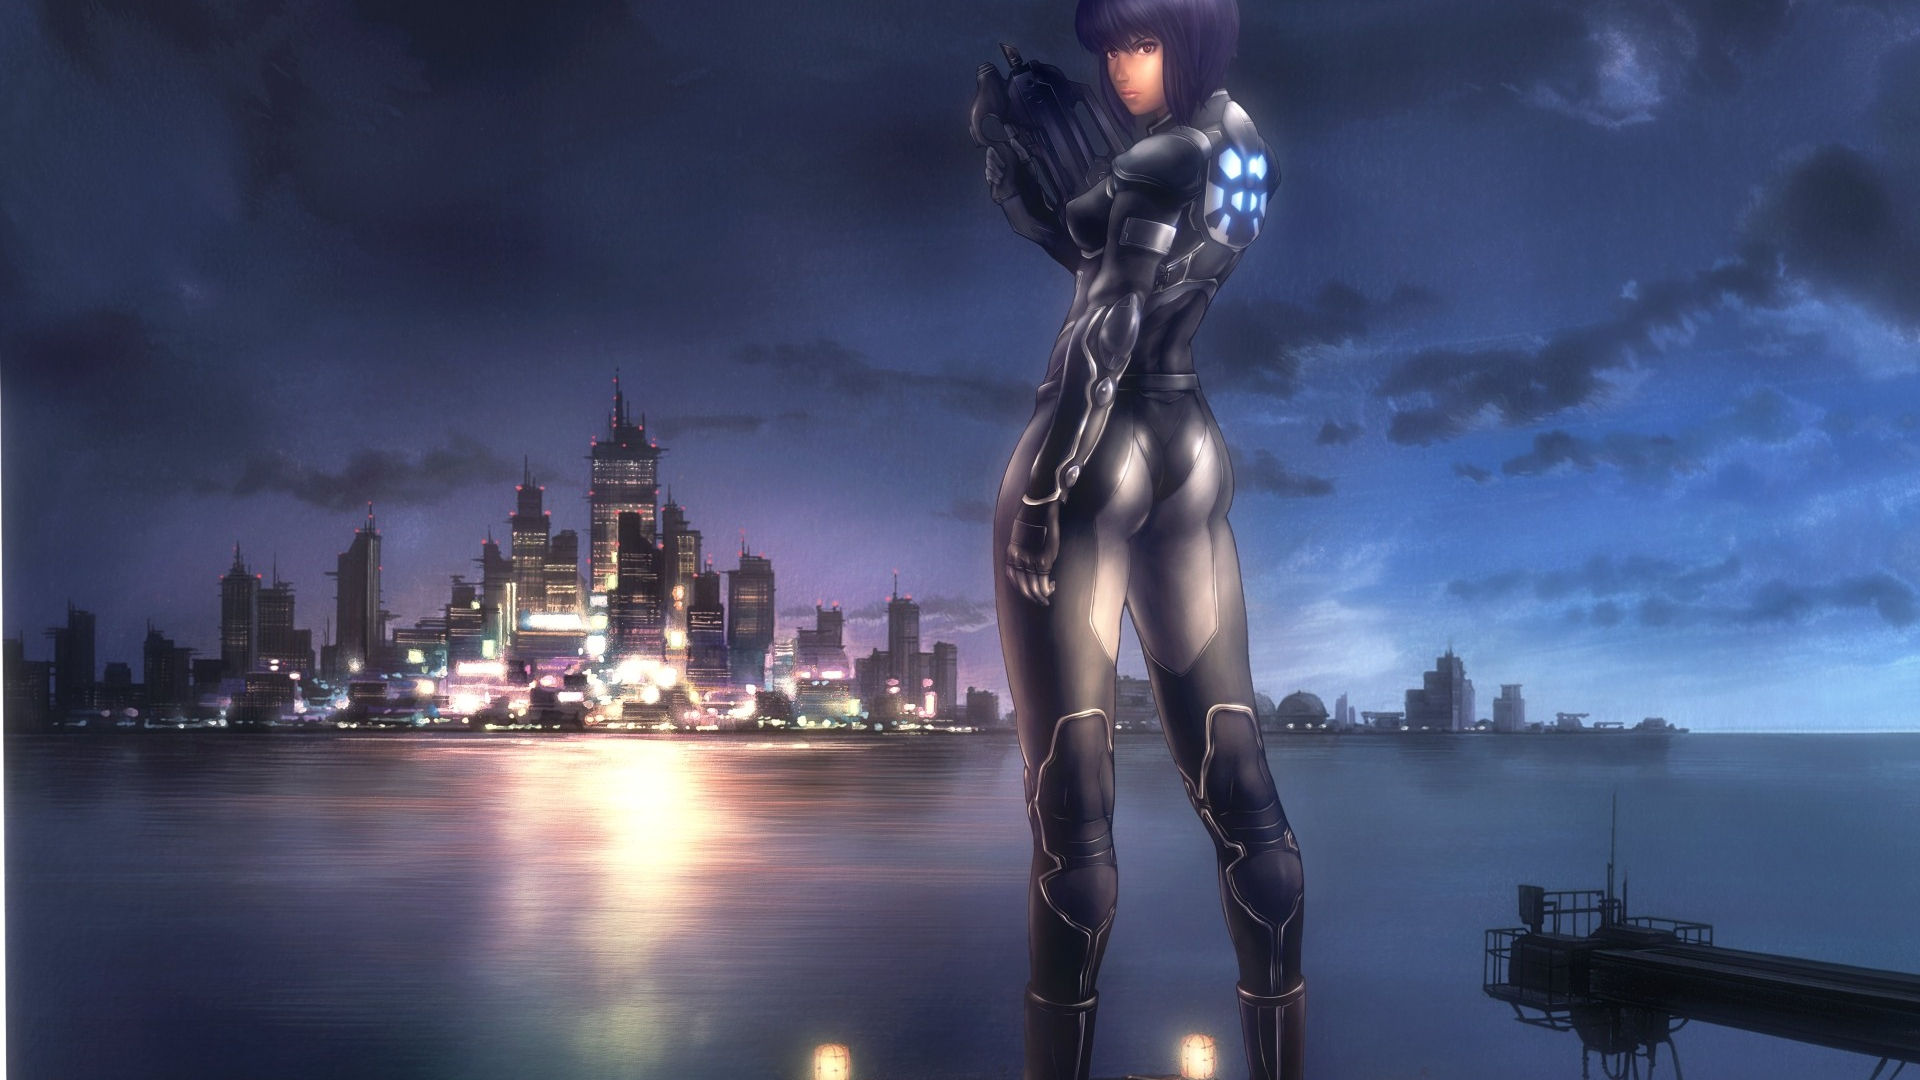 Free Download Ghost In The Shell Desktop Wallpaper 1920x1200 For